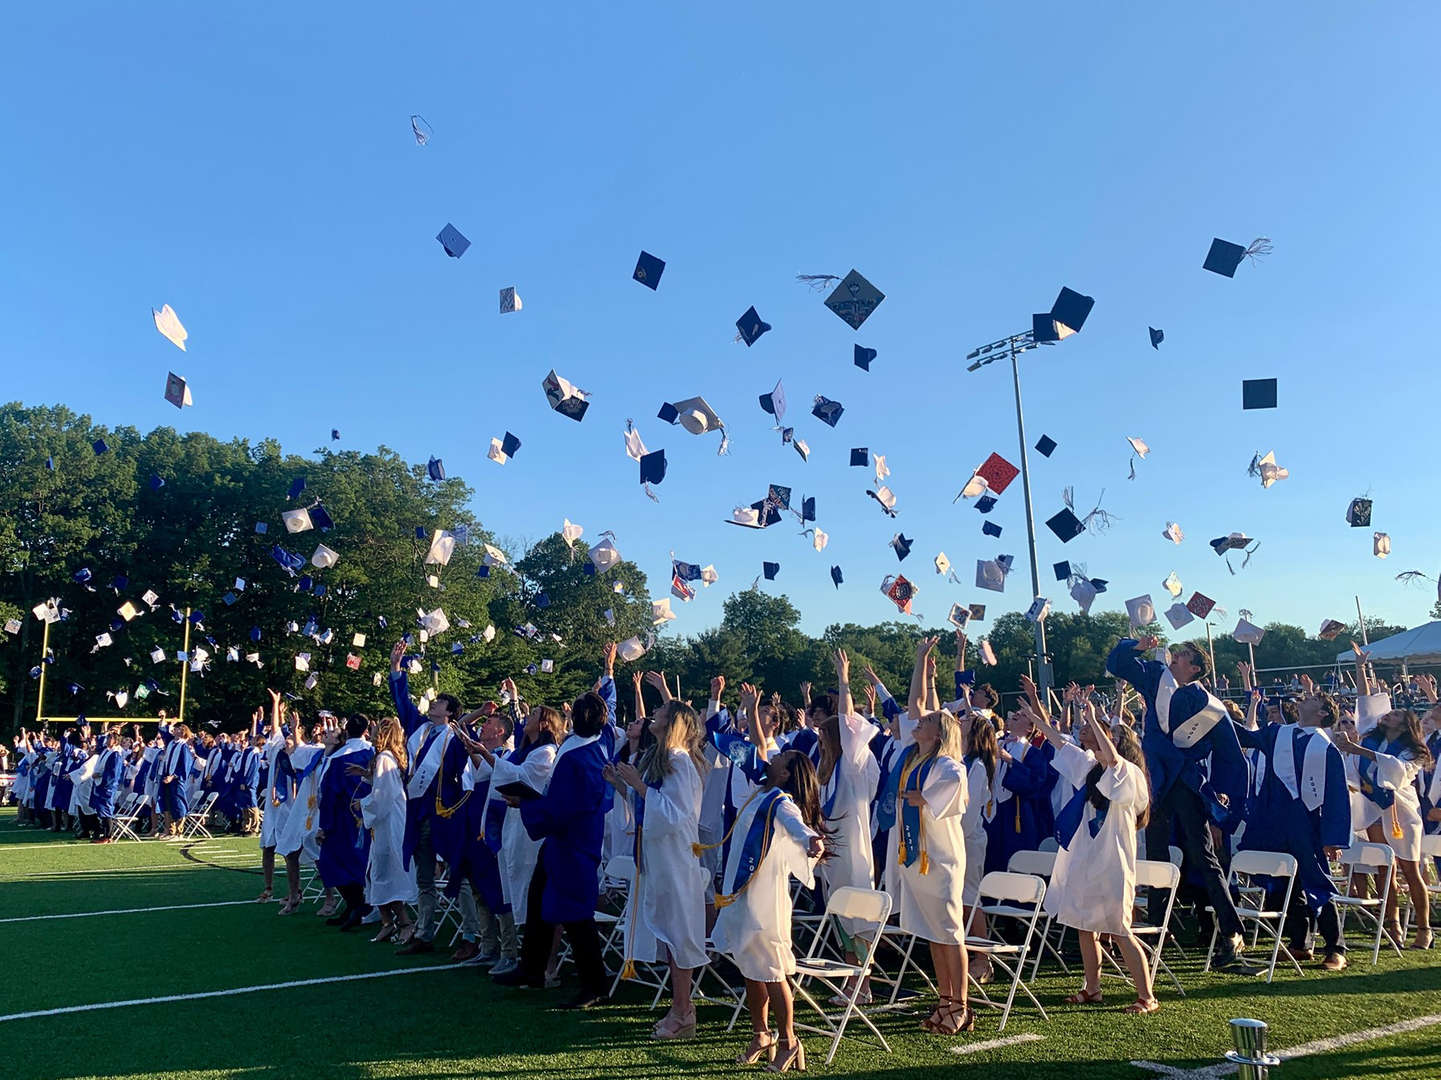 The graduating class tosses their caps into the air as they graduate